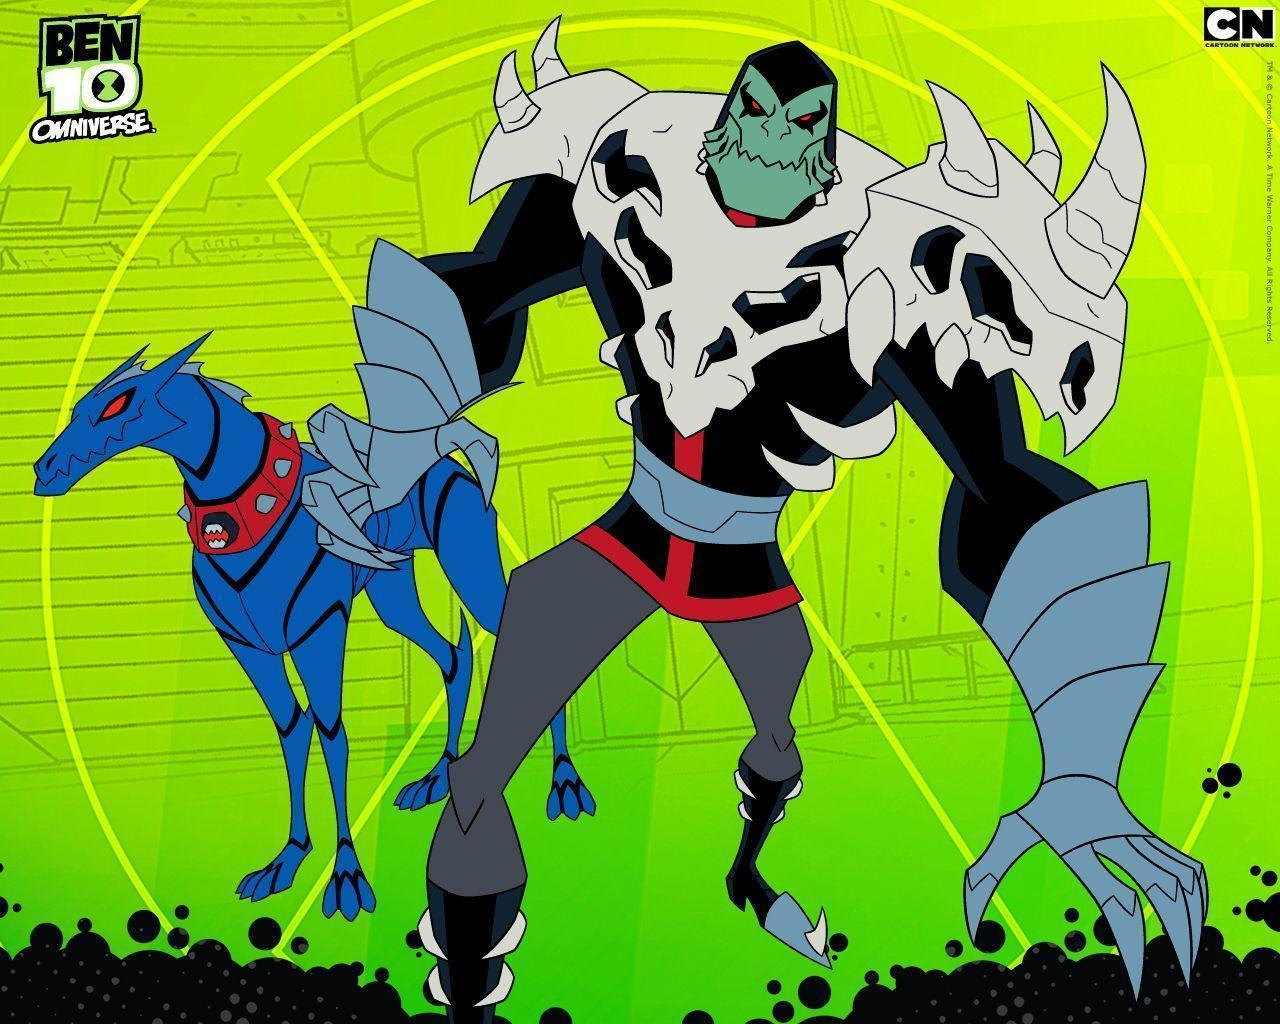 Ben 10: Omniverse Wallpapers